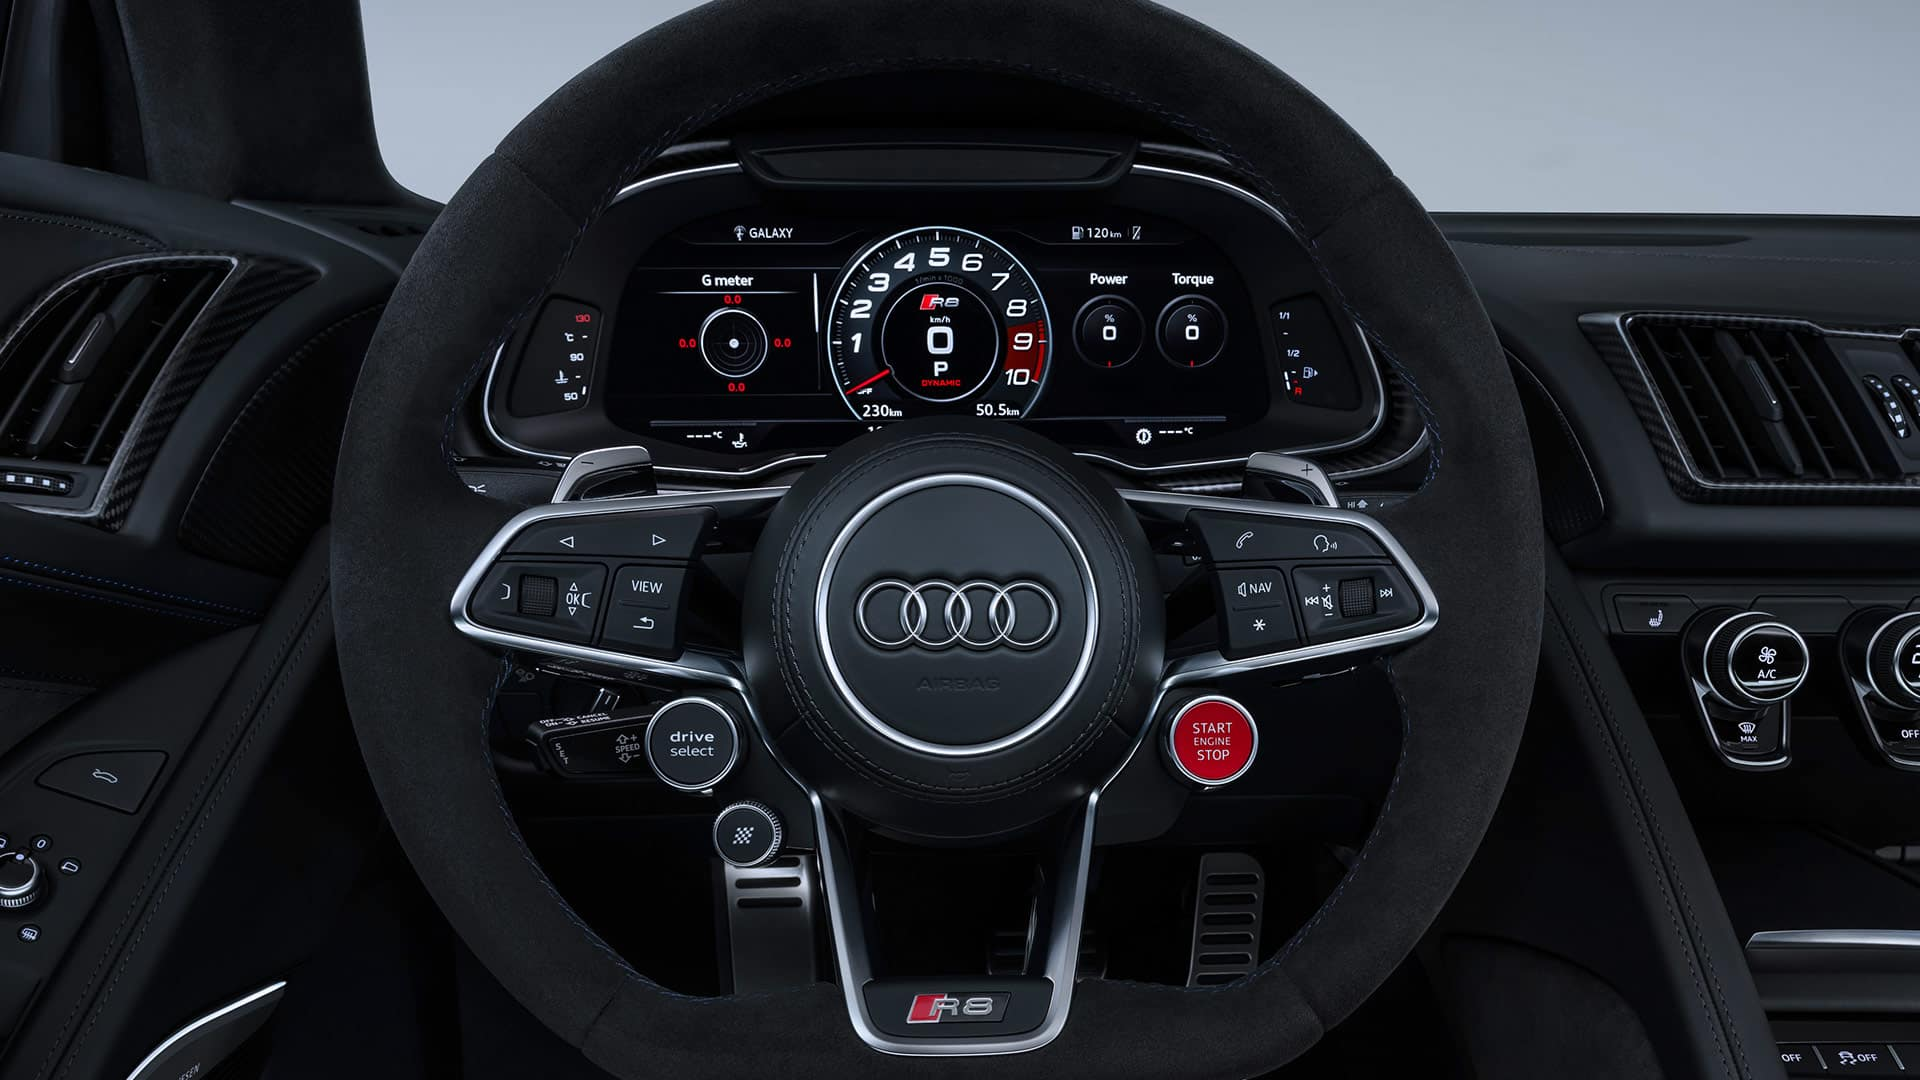 Audi virtual cockpit im Audi R8